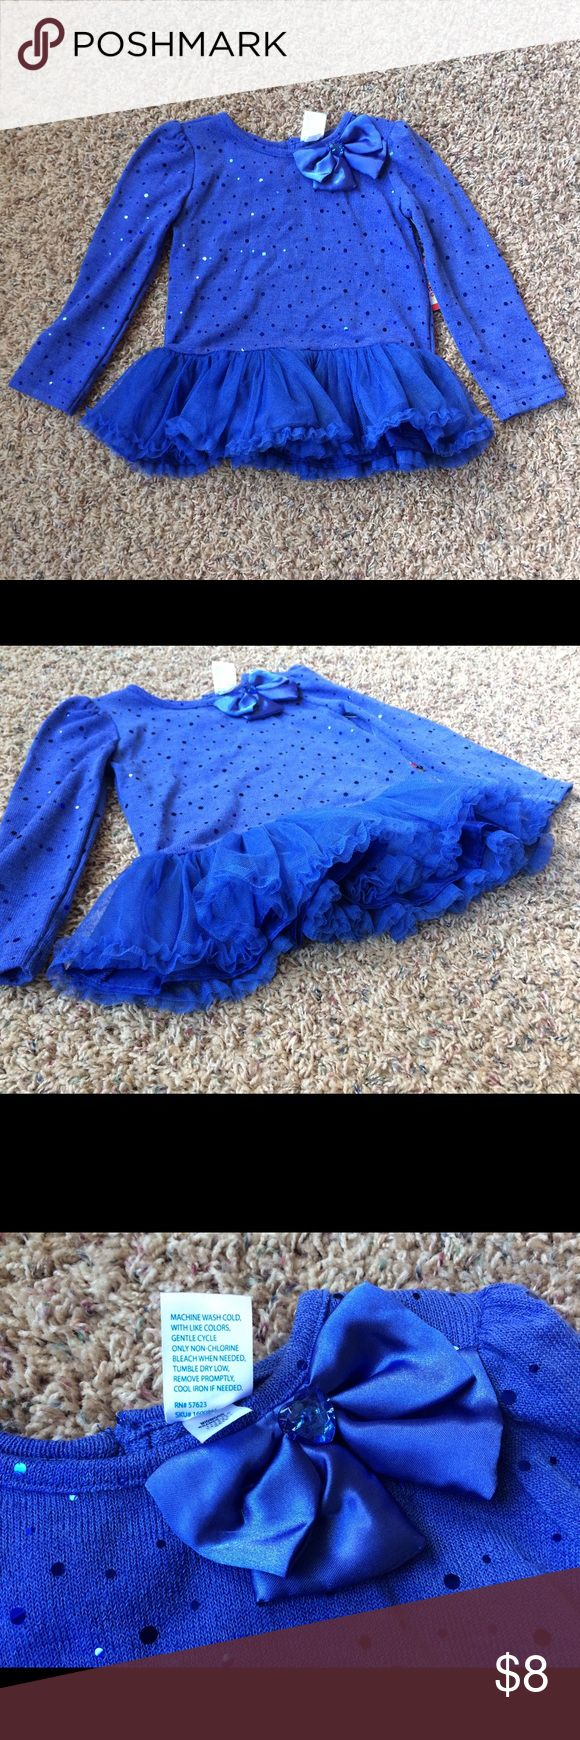 New Blue Sparkle Tutu Long Sleeve Top 3T Brand new with tags. Polyester/spandex blend. Gadgets Shirts & Tops